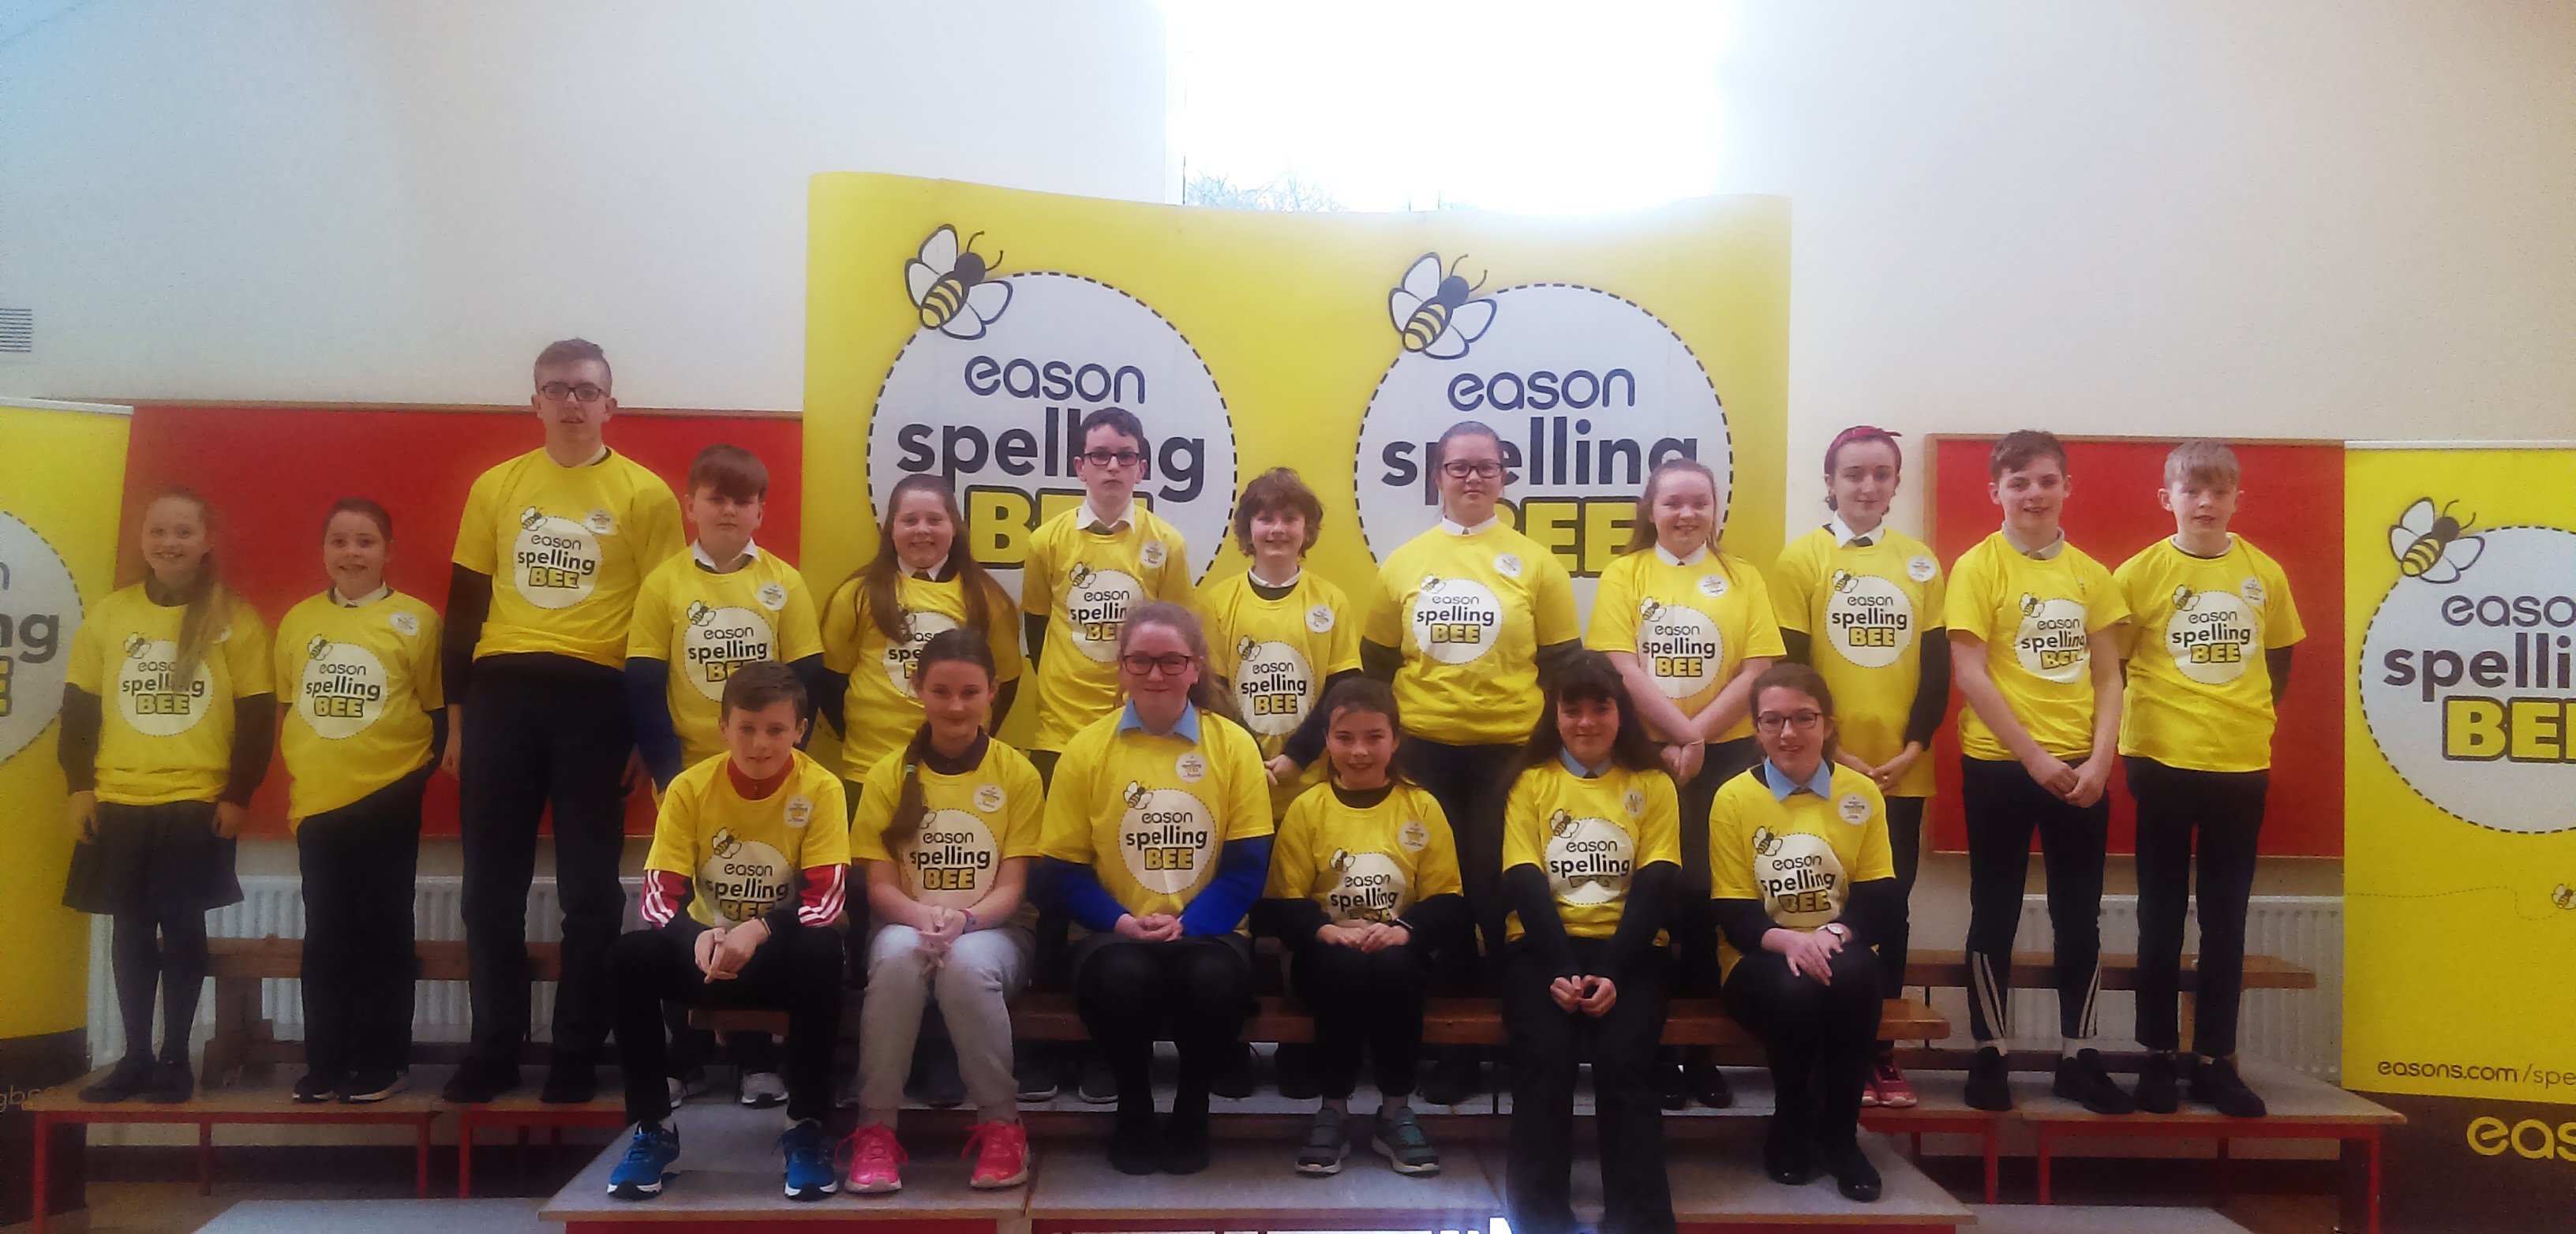 Spelling Bee 2019 - Kerry Group Photo